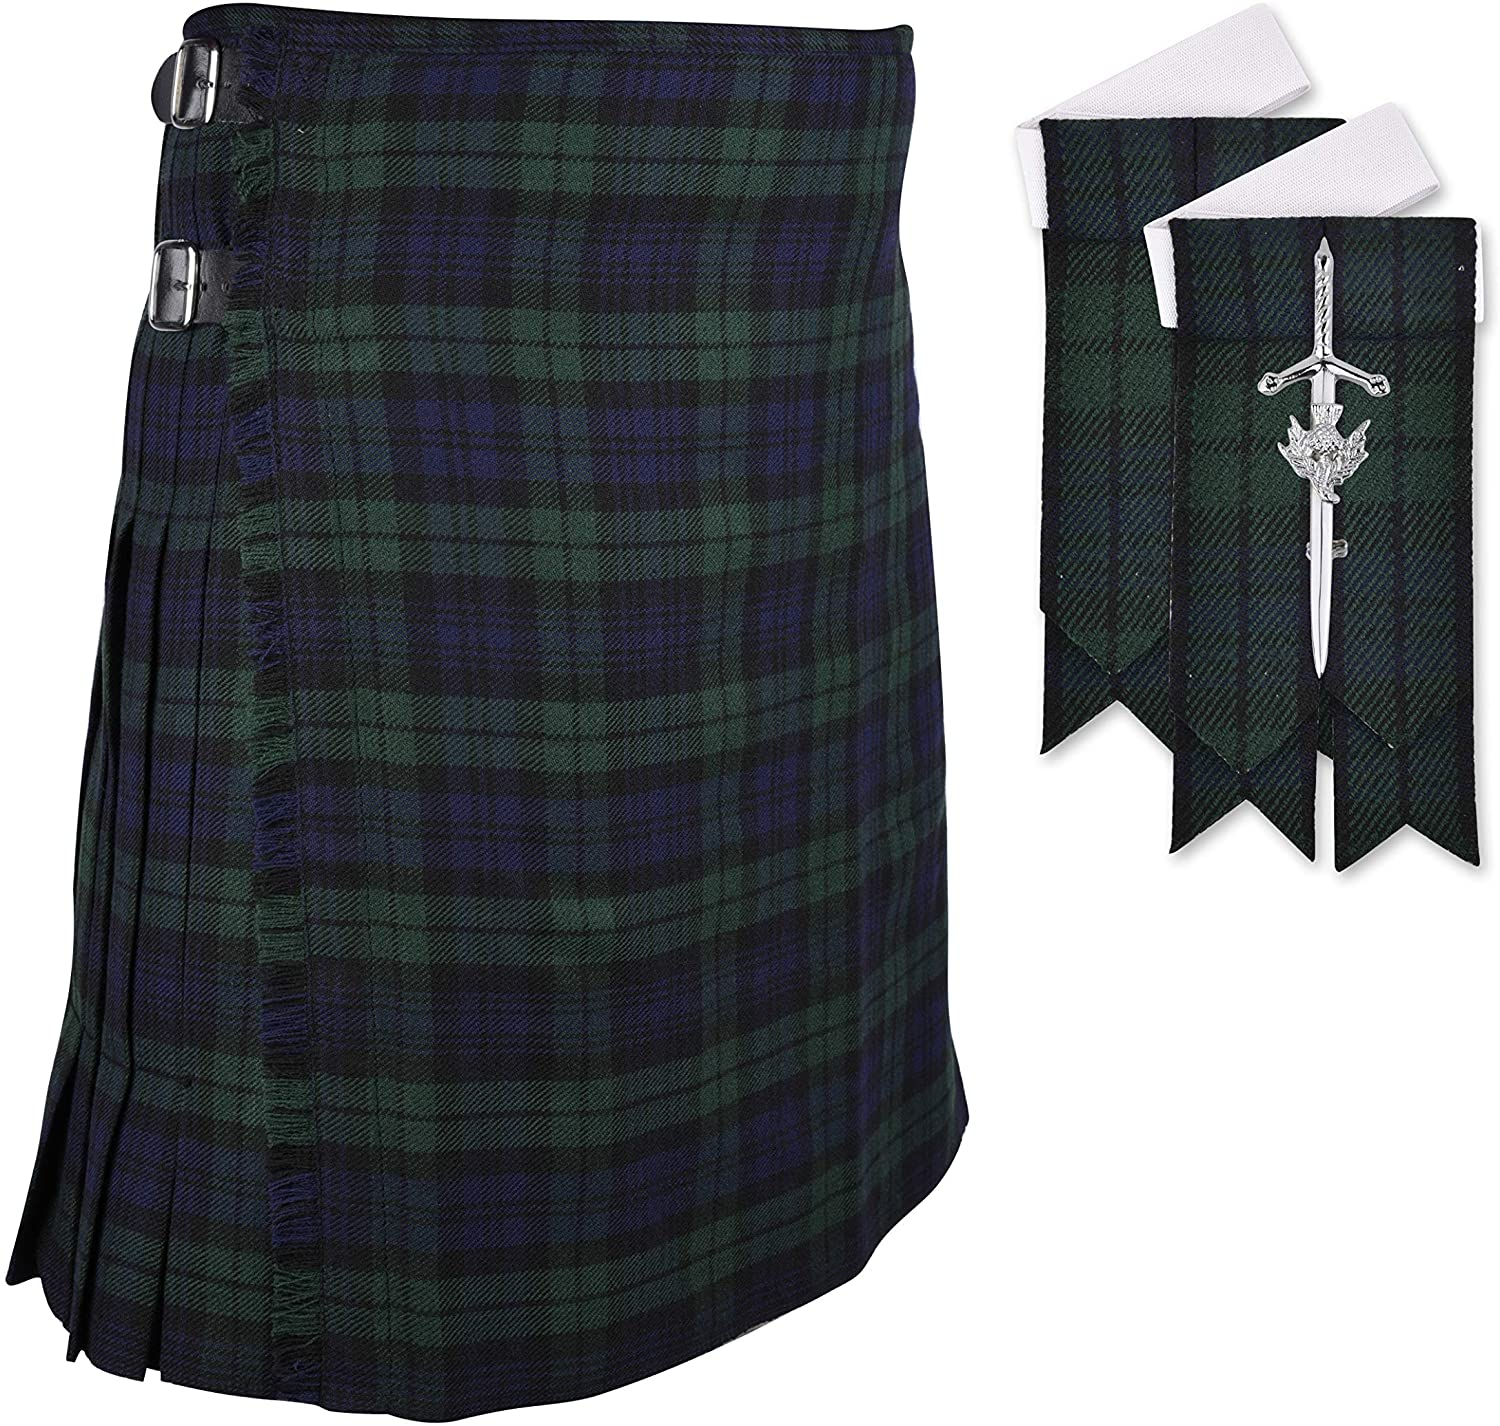 DSS Scottish Black Watch 8 Yard Tartan Kilt of Flashes & Kilt PIN